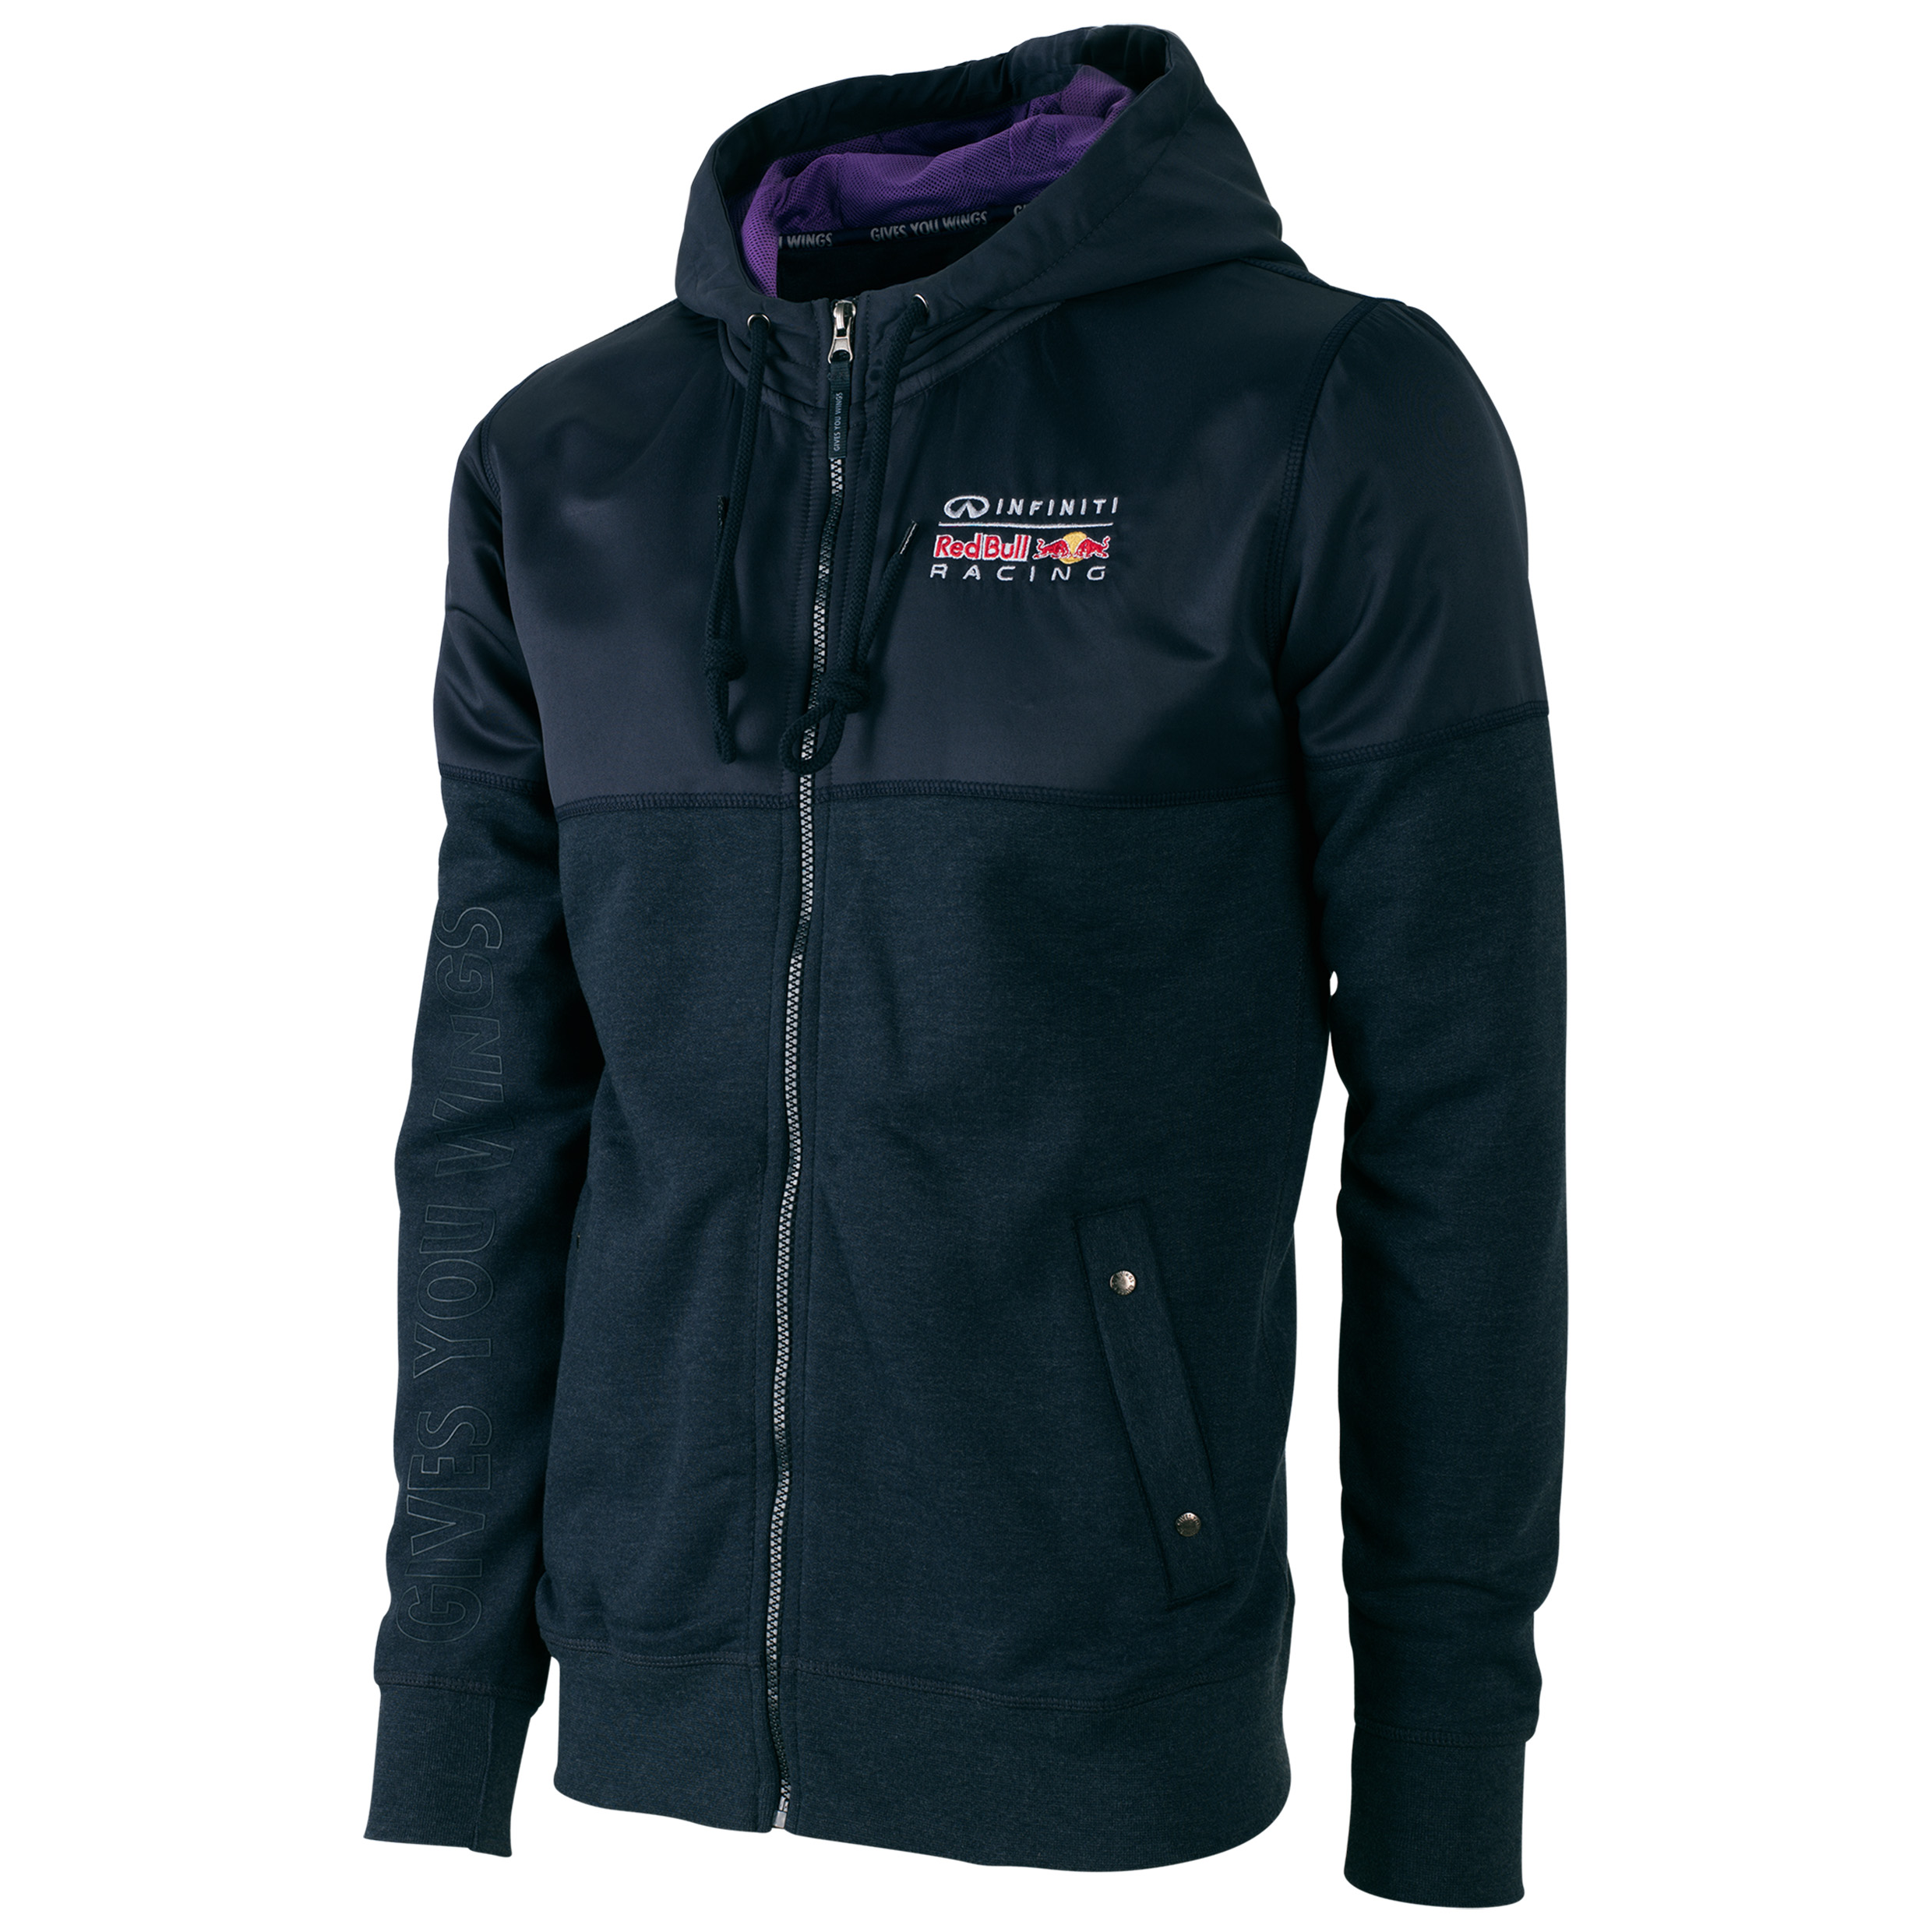 Infiniti Red Bull Racing Contrast Jacket